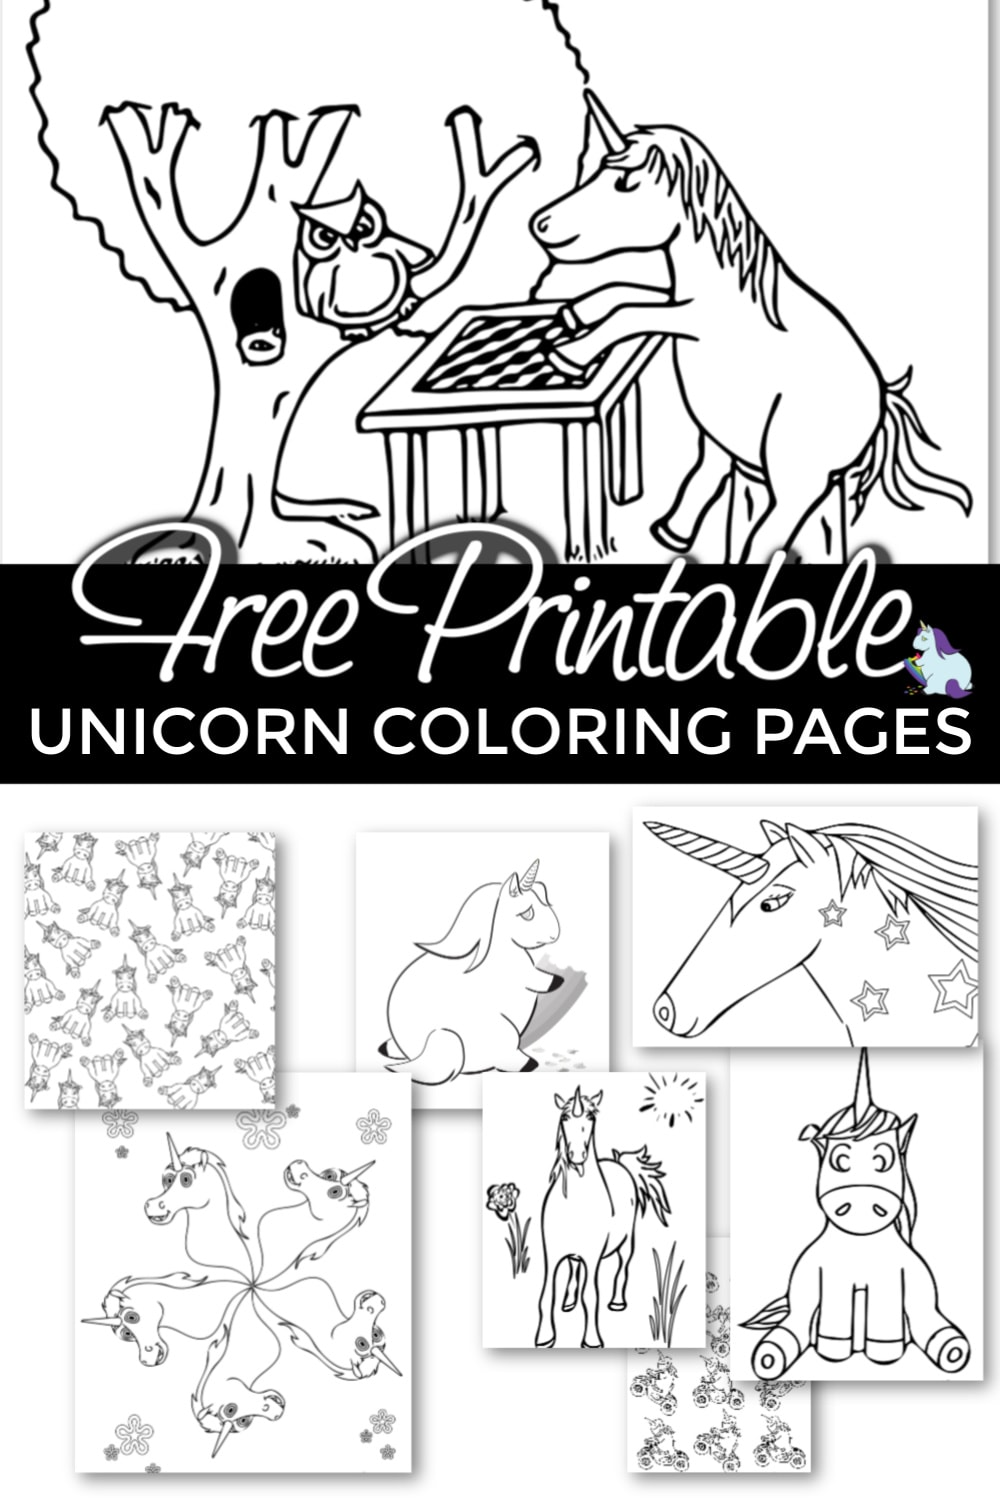 Free printable unicorn coloring pages